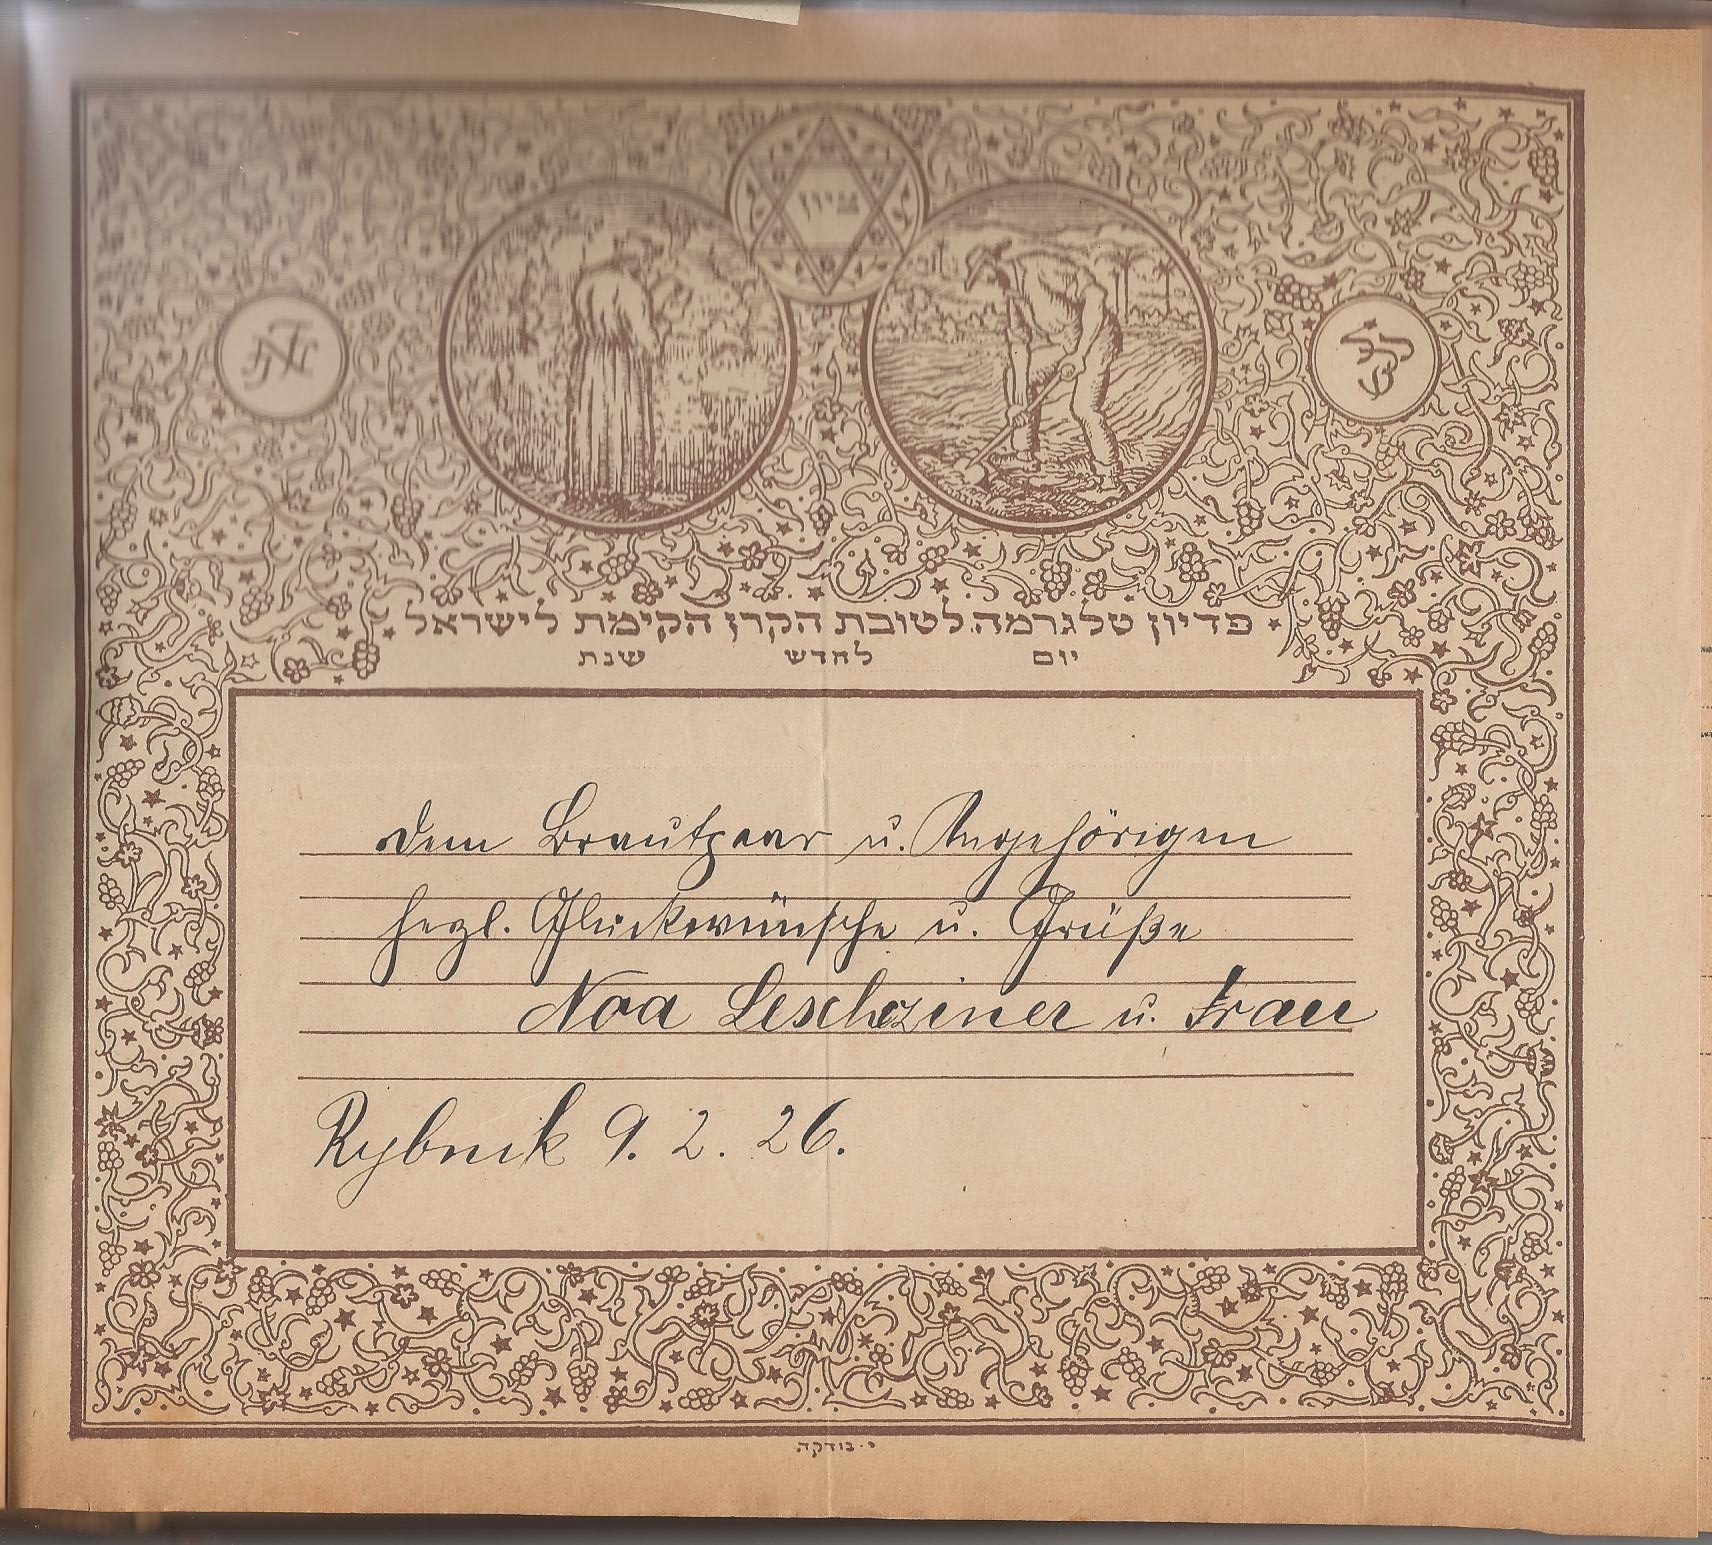 Guttmann wedding telegram-1